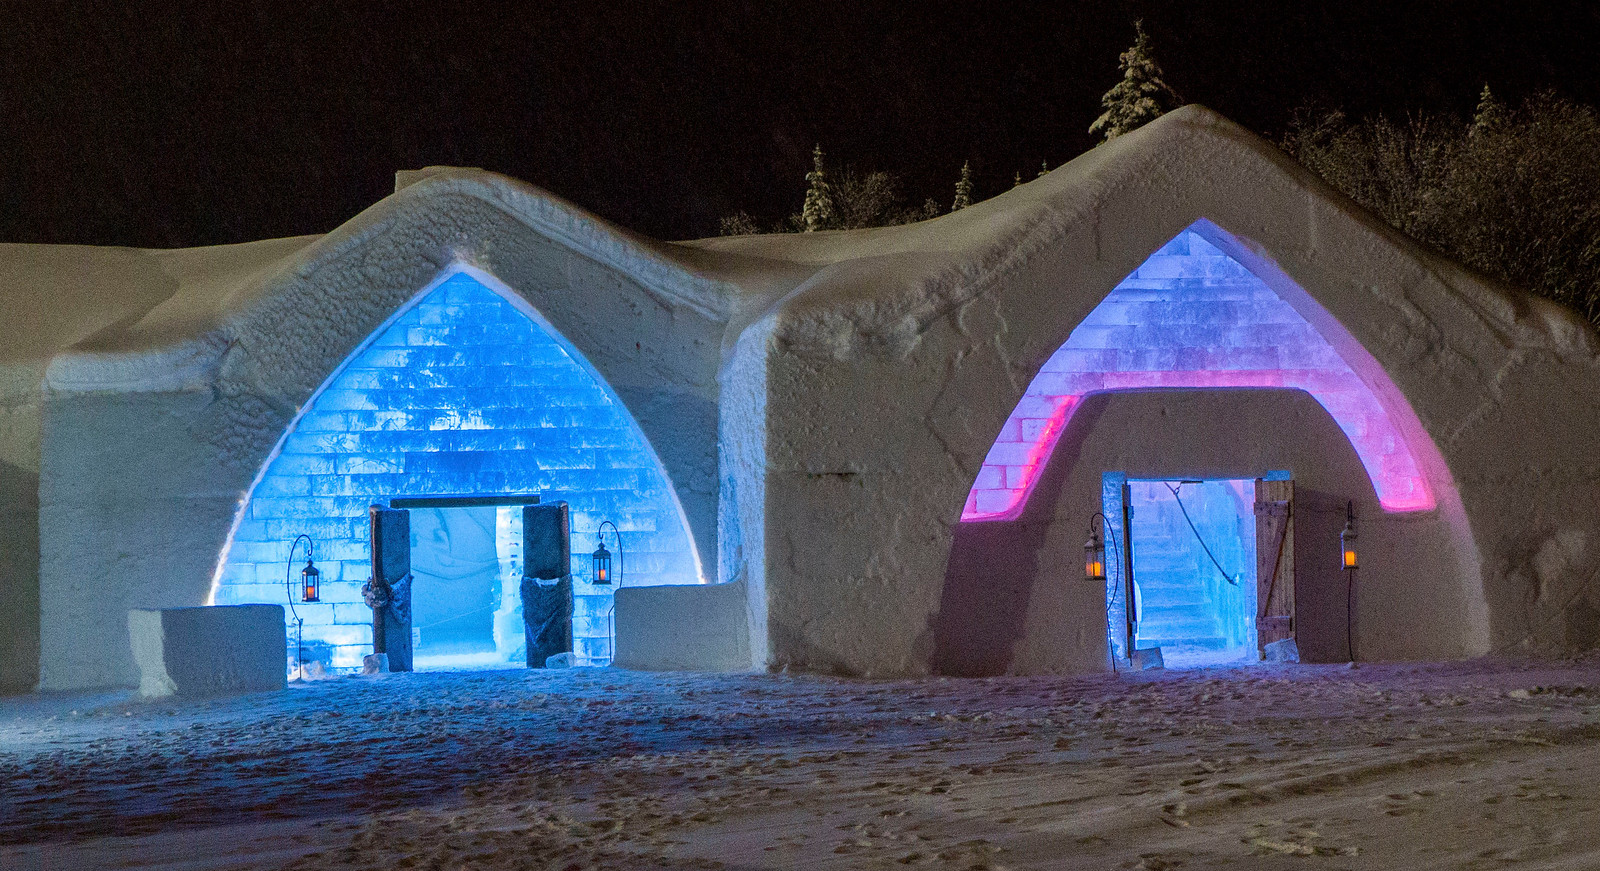 Ice Hotel Quebec: An Insider's Guide to Surviving the Night - Exterior ice buildings